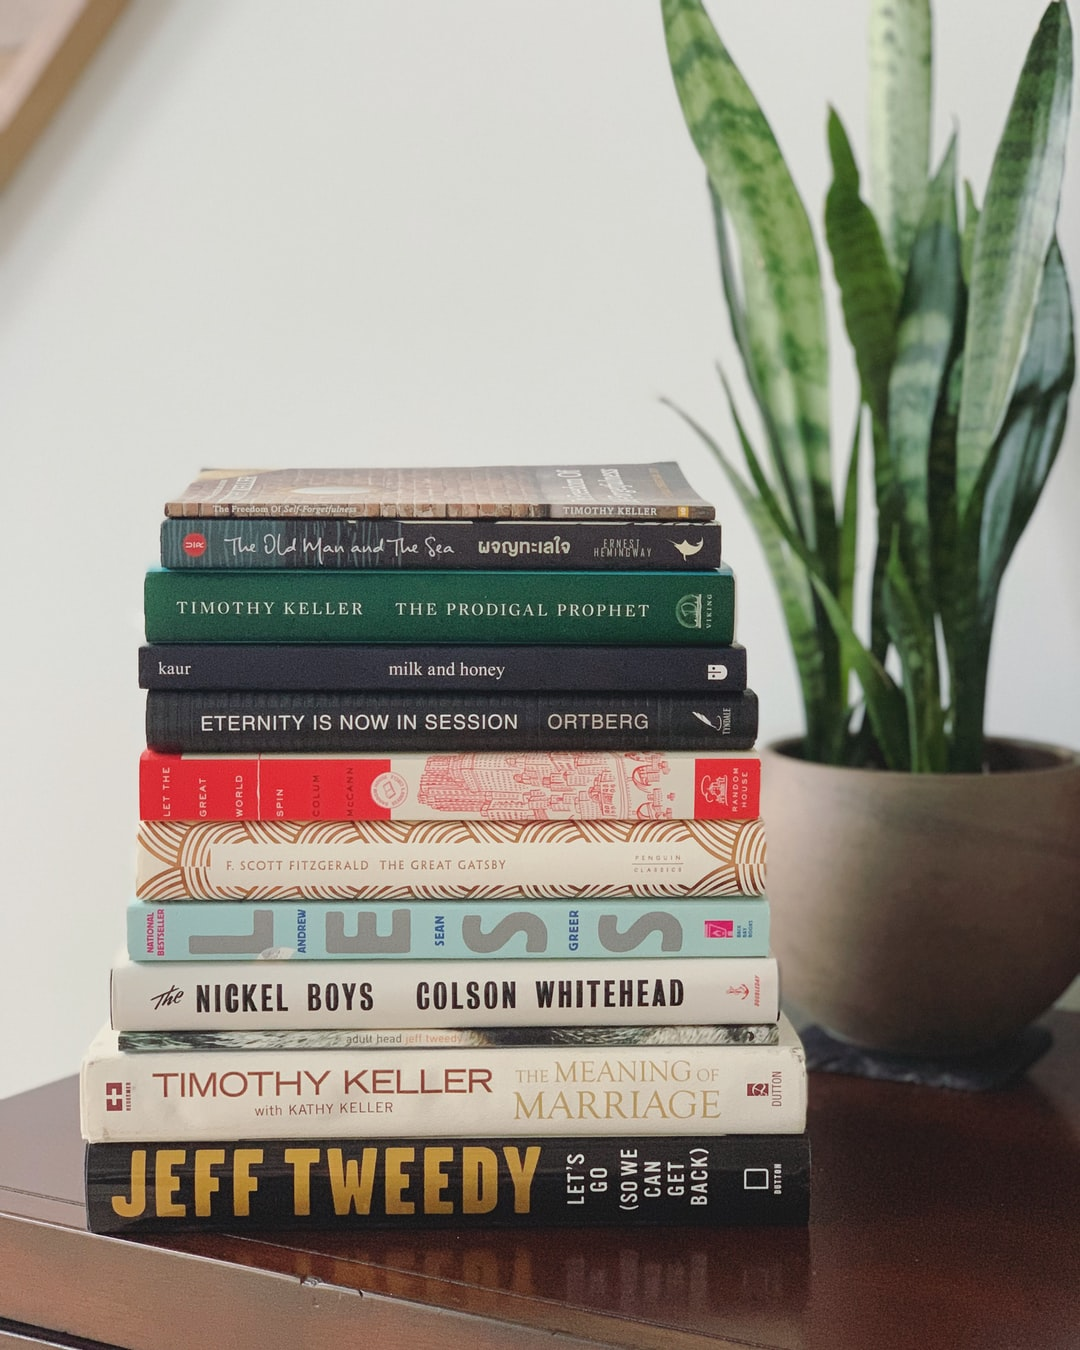 Books stacked on a table.